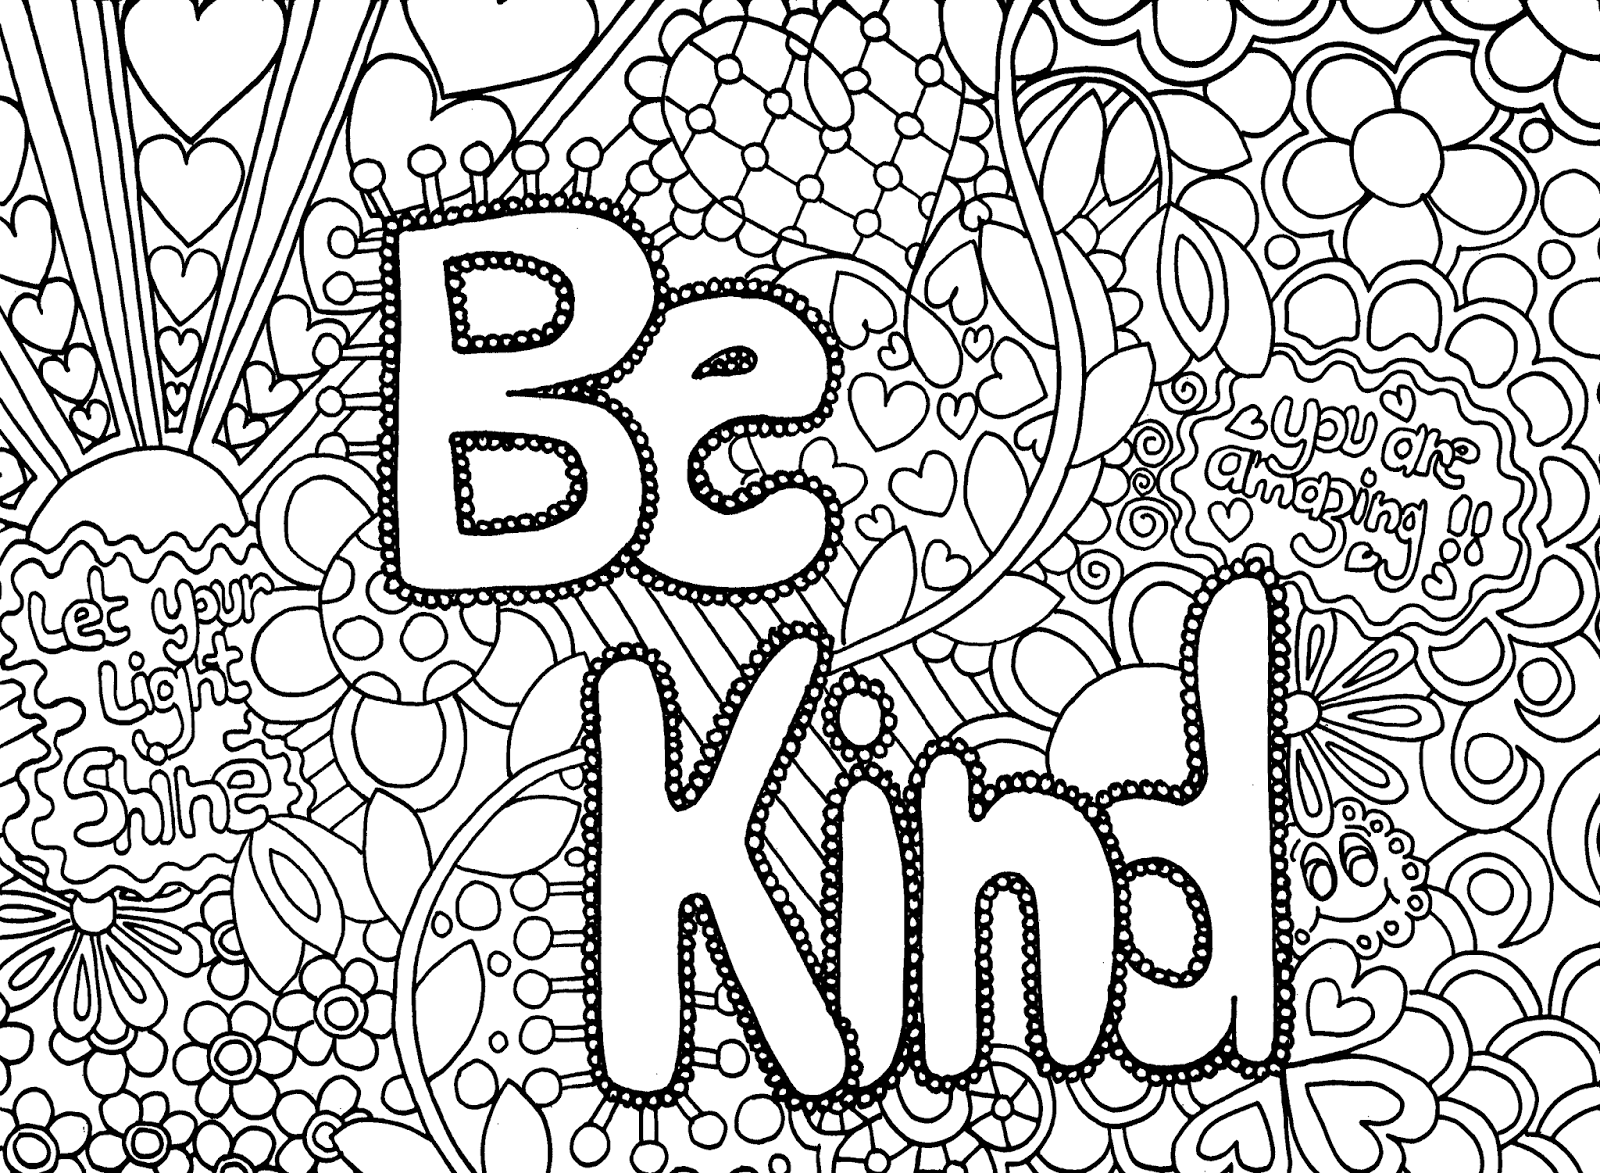 Coloring pictures for adults - Free Coloring Pages For Adults To Print Image 8